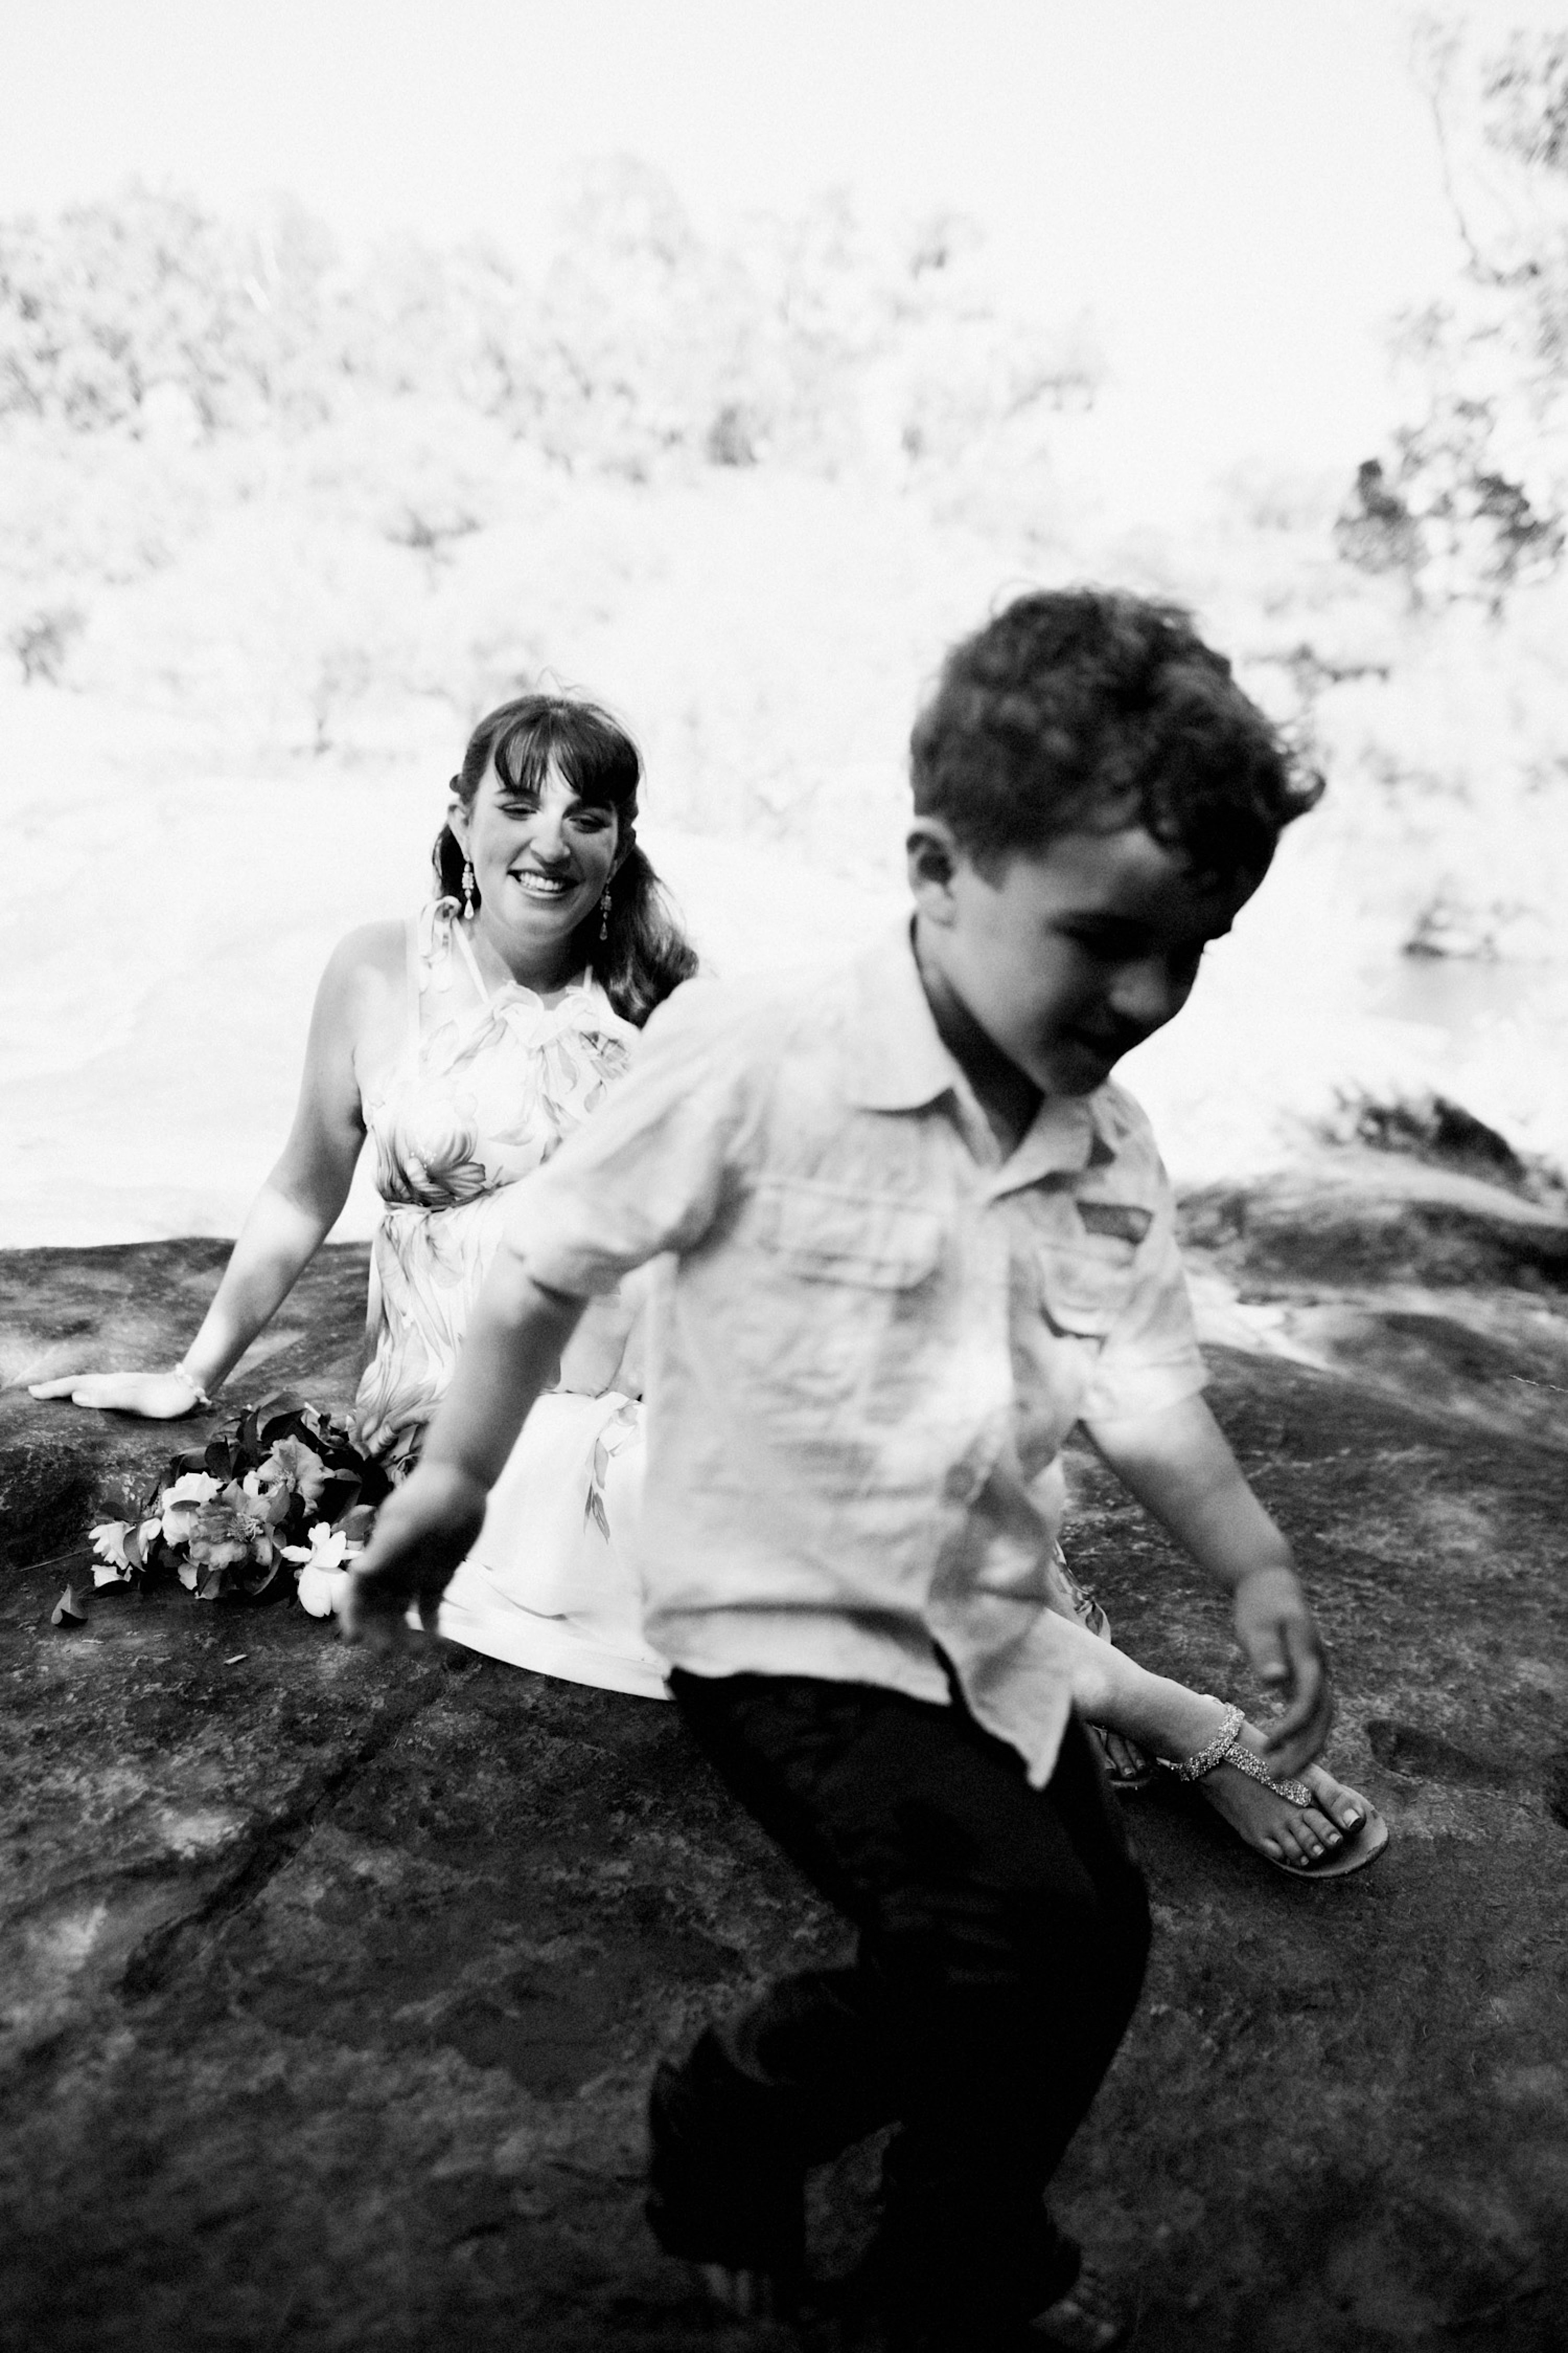 A candid image of a little boy running in front of his Mum during some Lifestyle Family Photographs as the Mum laughs.